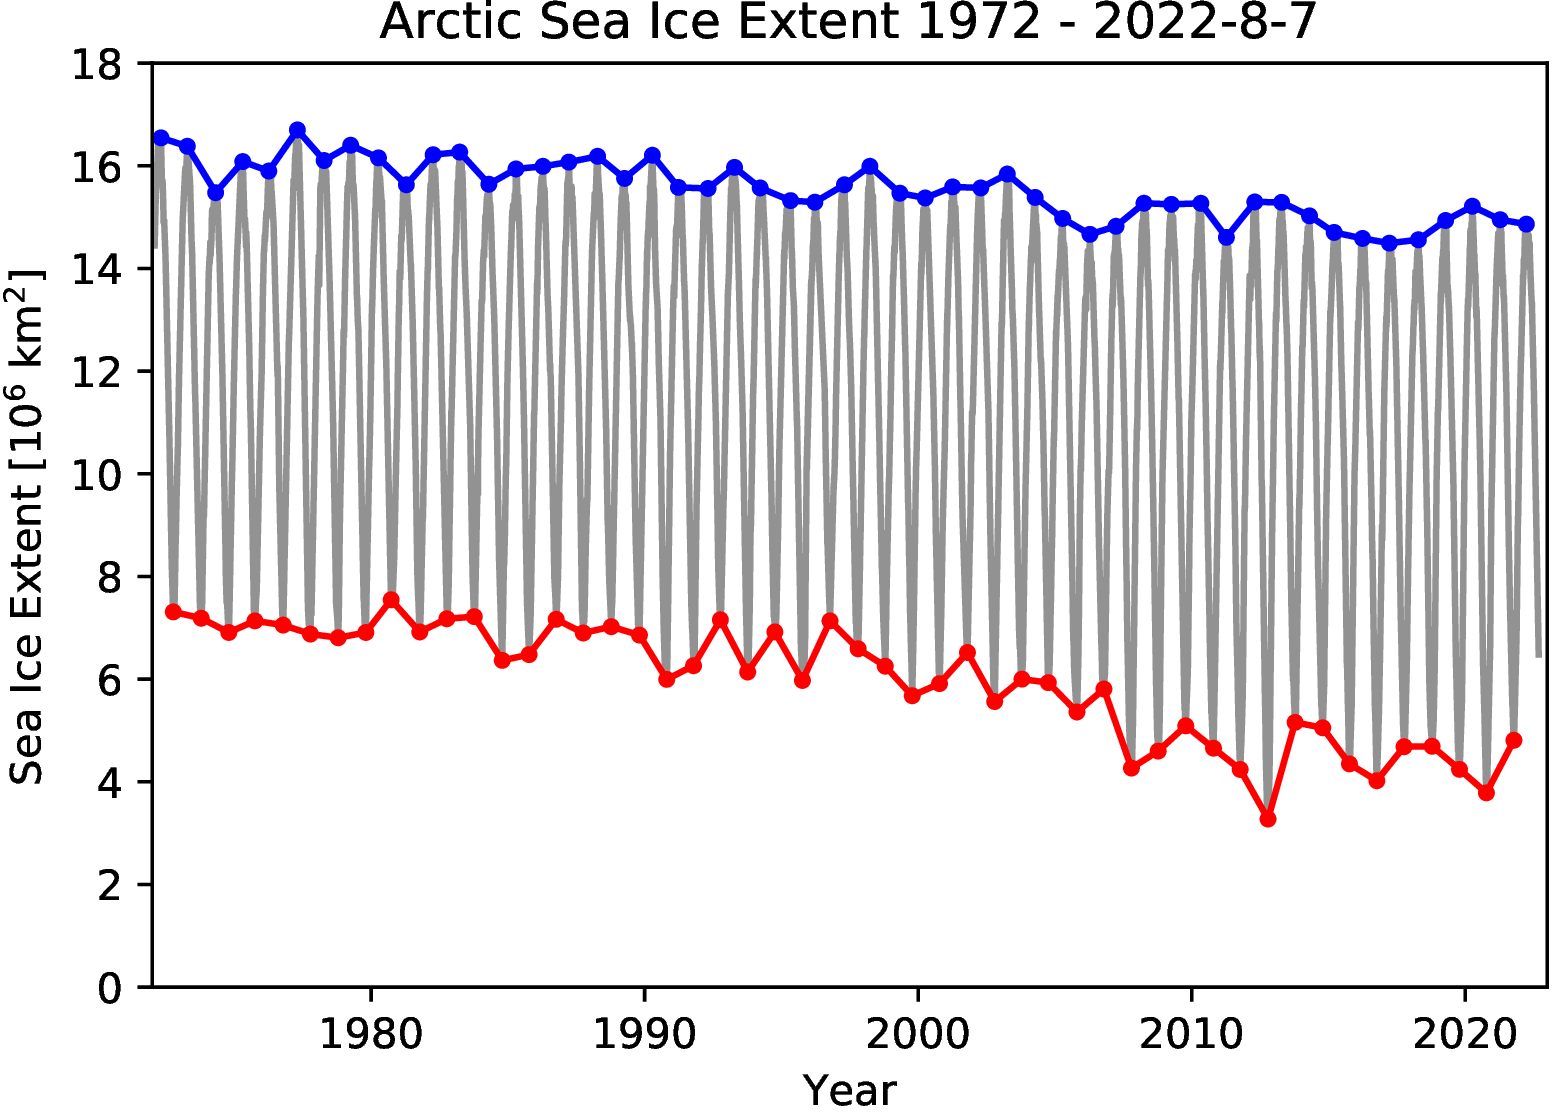 https://seaice.uni-bremen.de/data/amsr2/today/ice_minmax_n.png